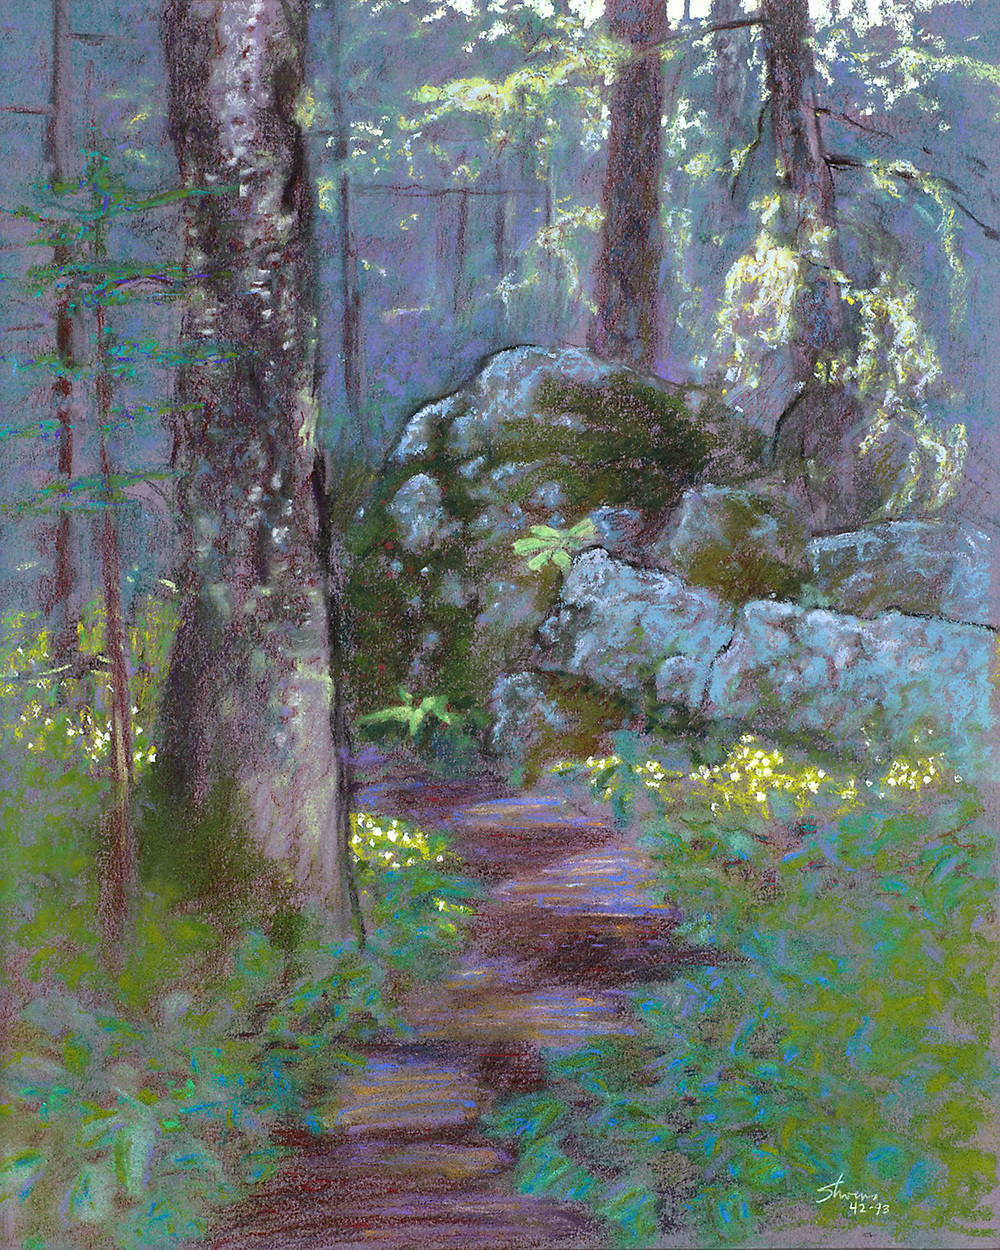 Trail to Lookout   | pastel on paper | 18 x 15"